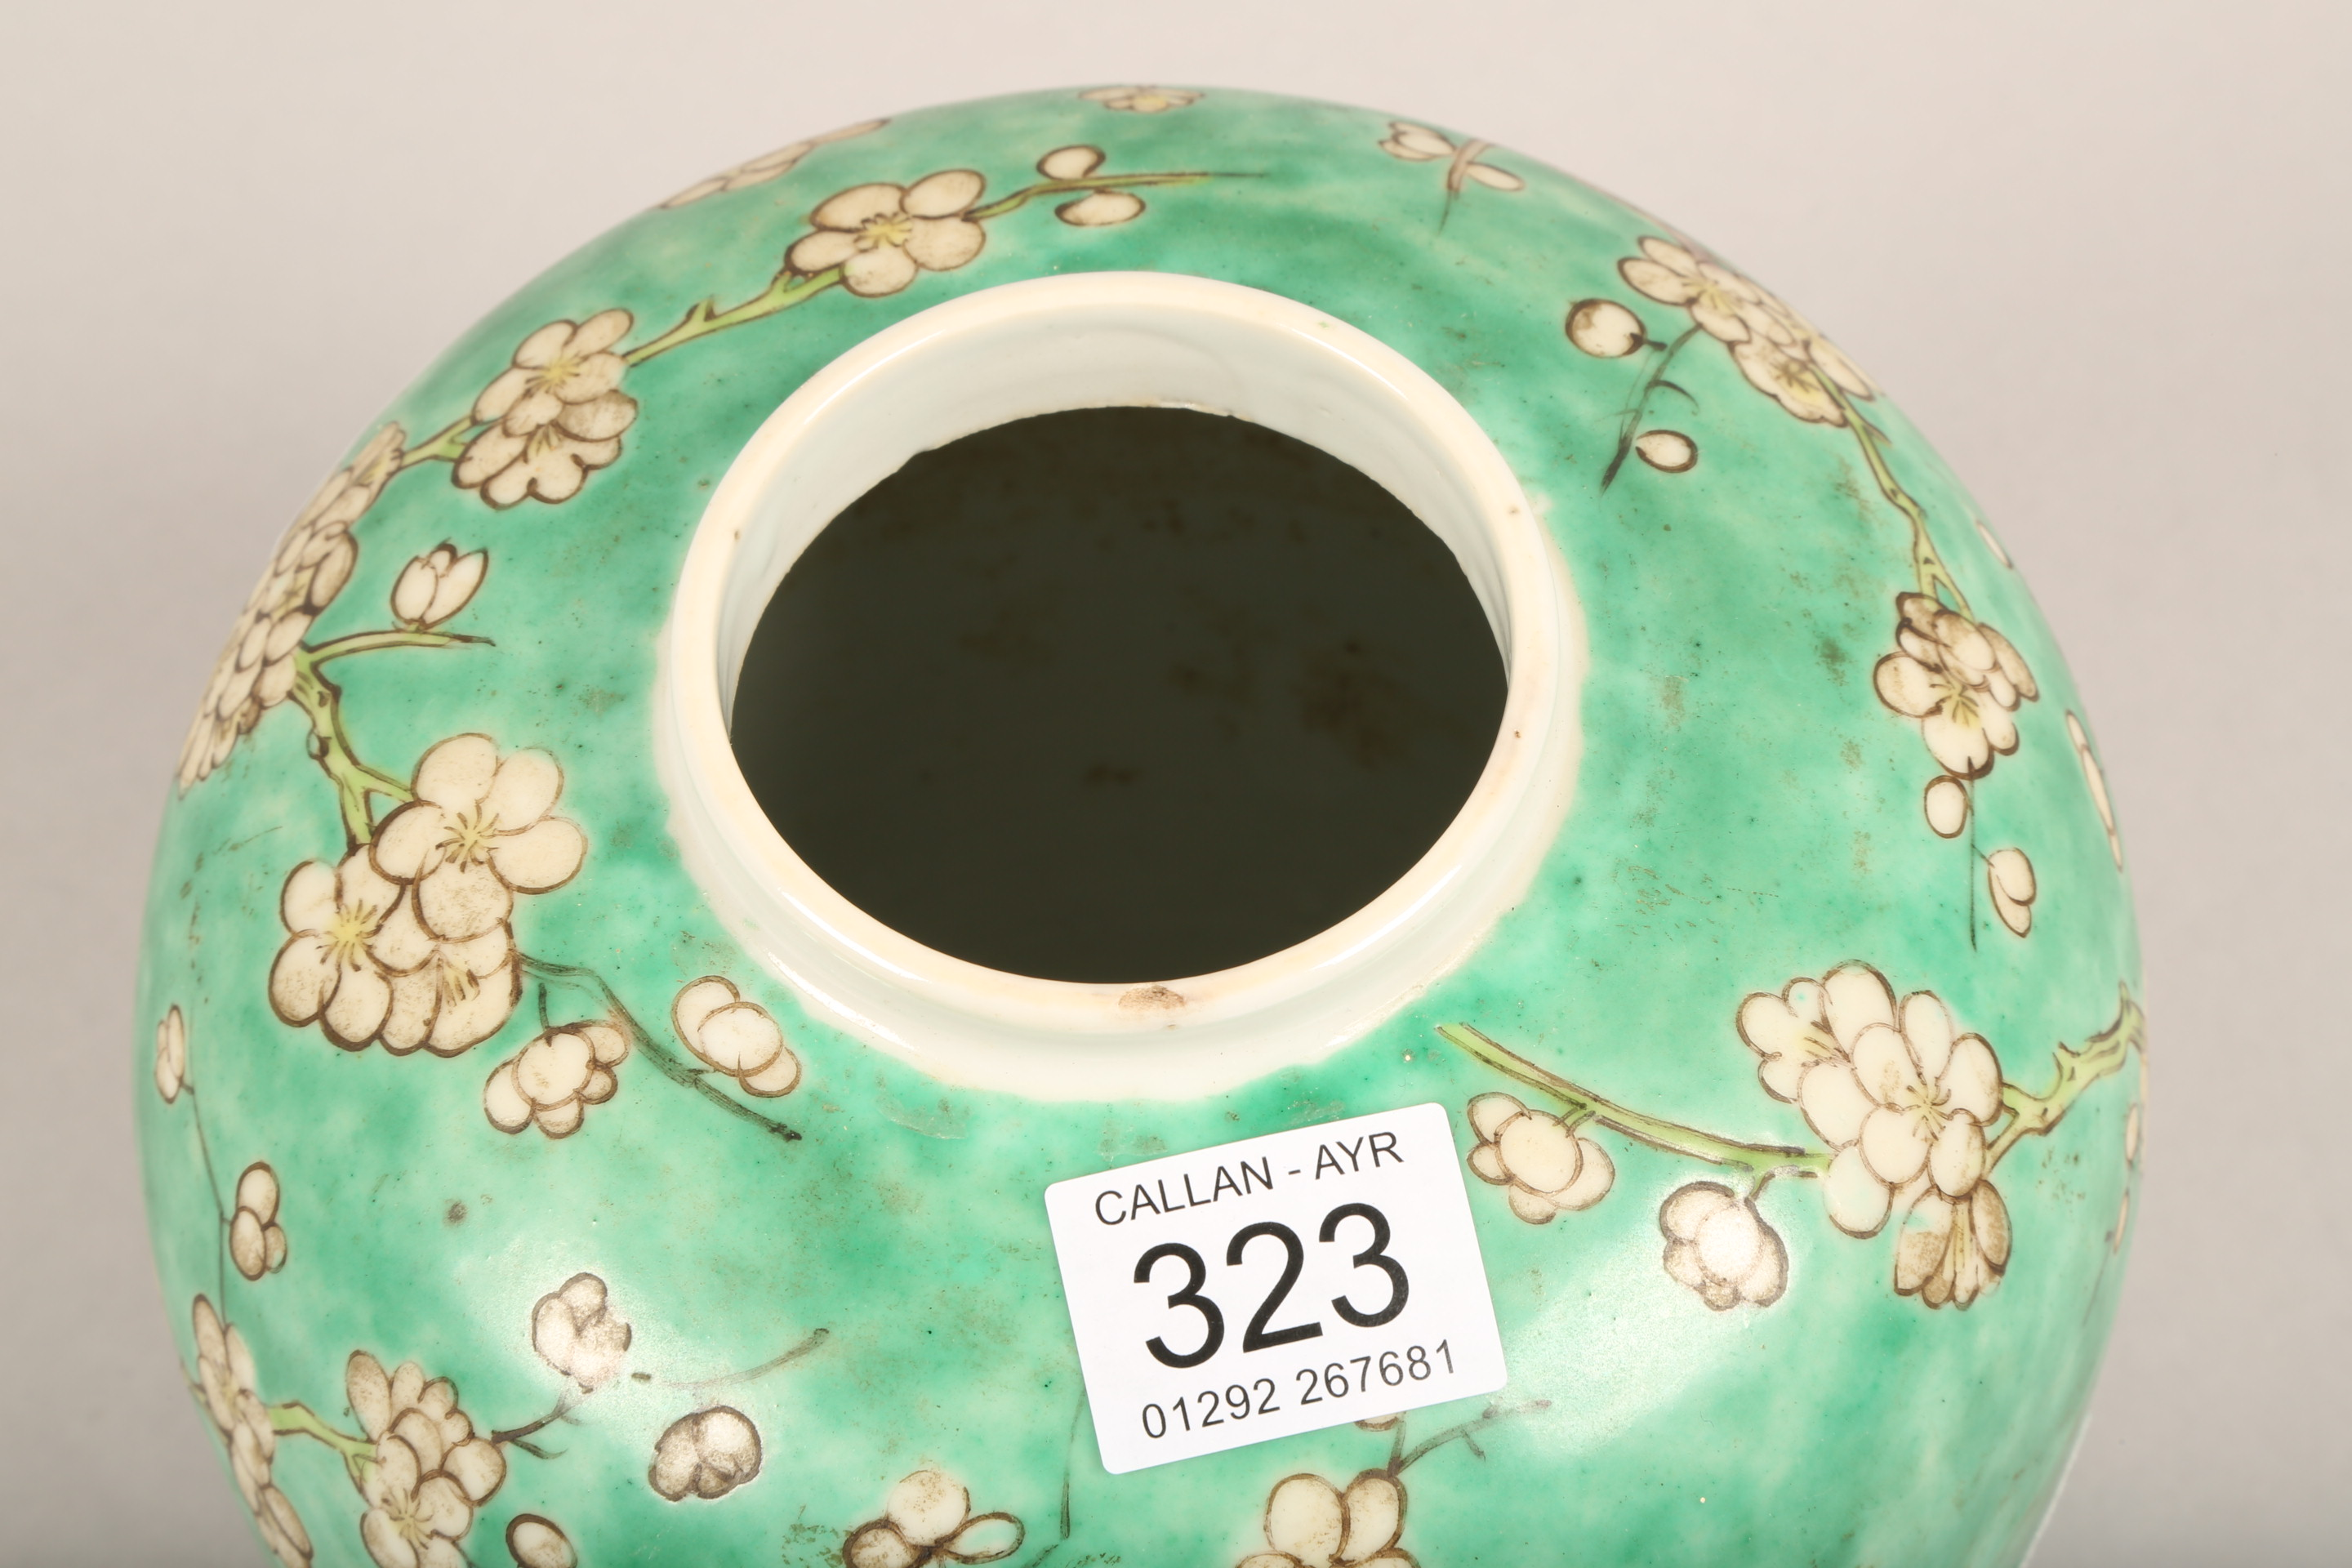 19th/20th century Chinese ginger jar and cover, green ground decorated with birds in a flowering - Image 5 of 6